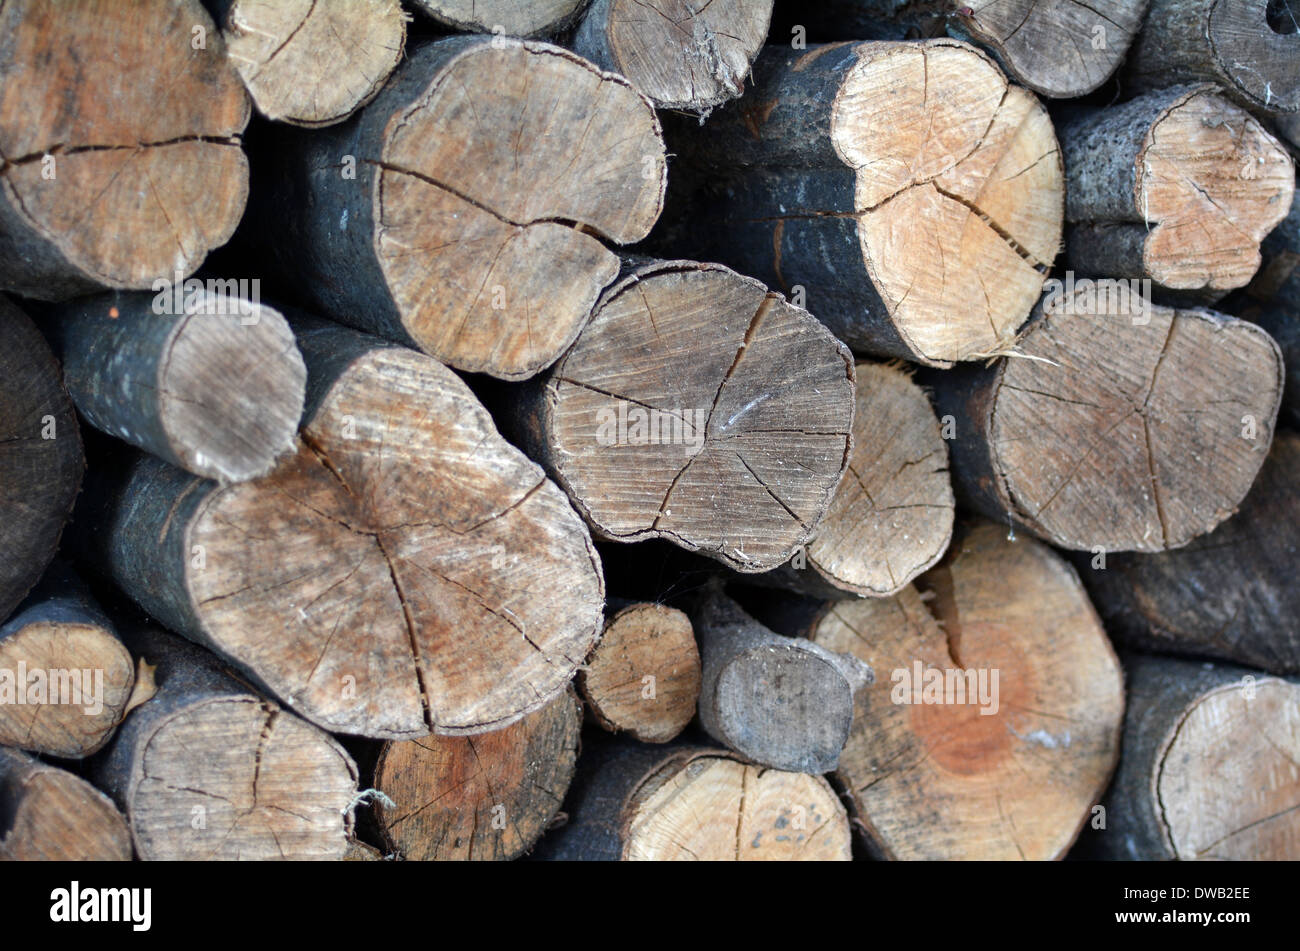 Firewood logs stacked up in a pile. - Stock Image